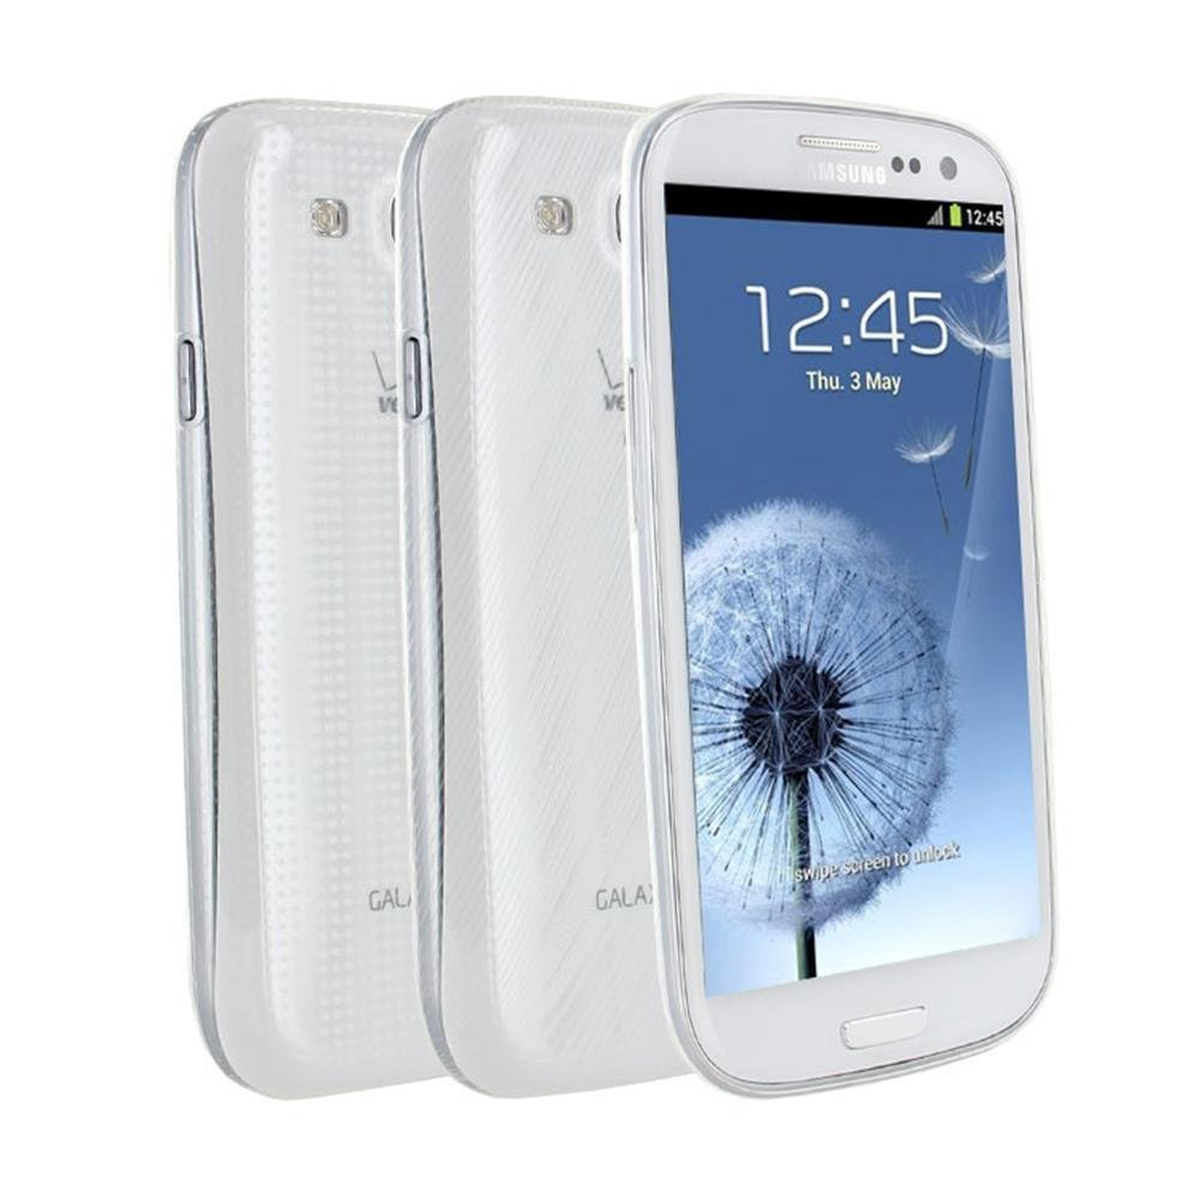 Samsung Original 2x Ultraslim Cover für Galaxy S3...